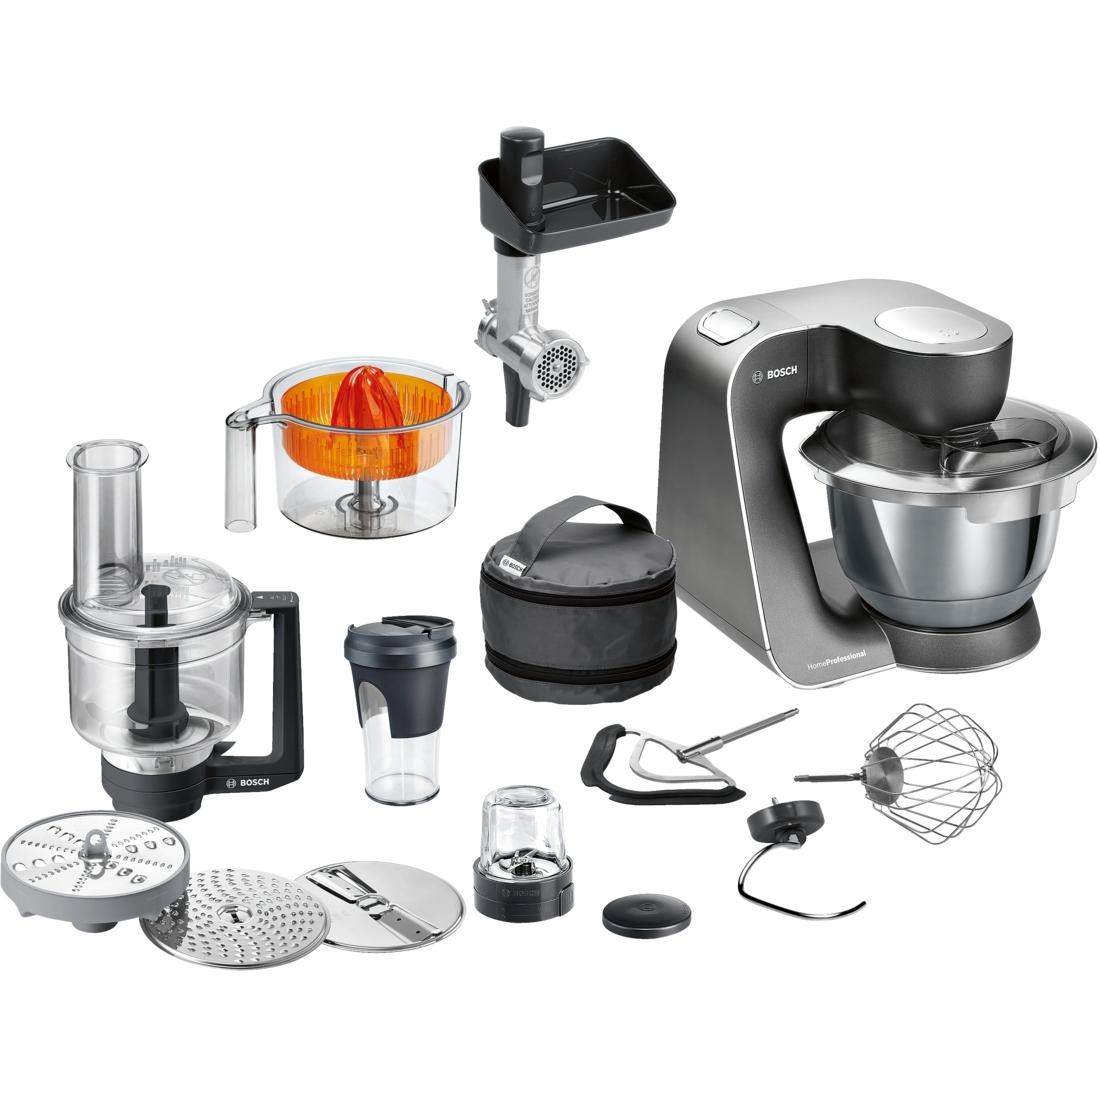 Bosch MUM59M55 Food processor, 1000W, Bowl capacity: 3.9L, Blender capacity: 0.5L, 7 speed settings, Mystic black Bosch Virtuves kombains